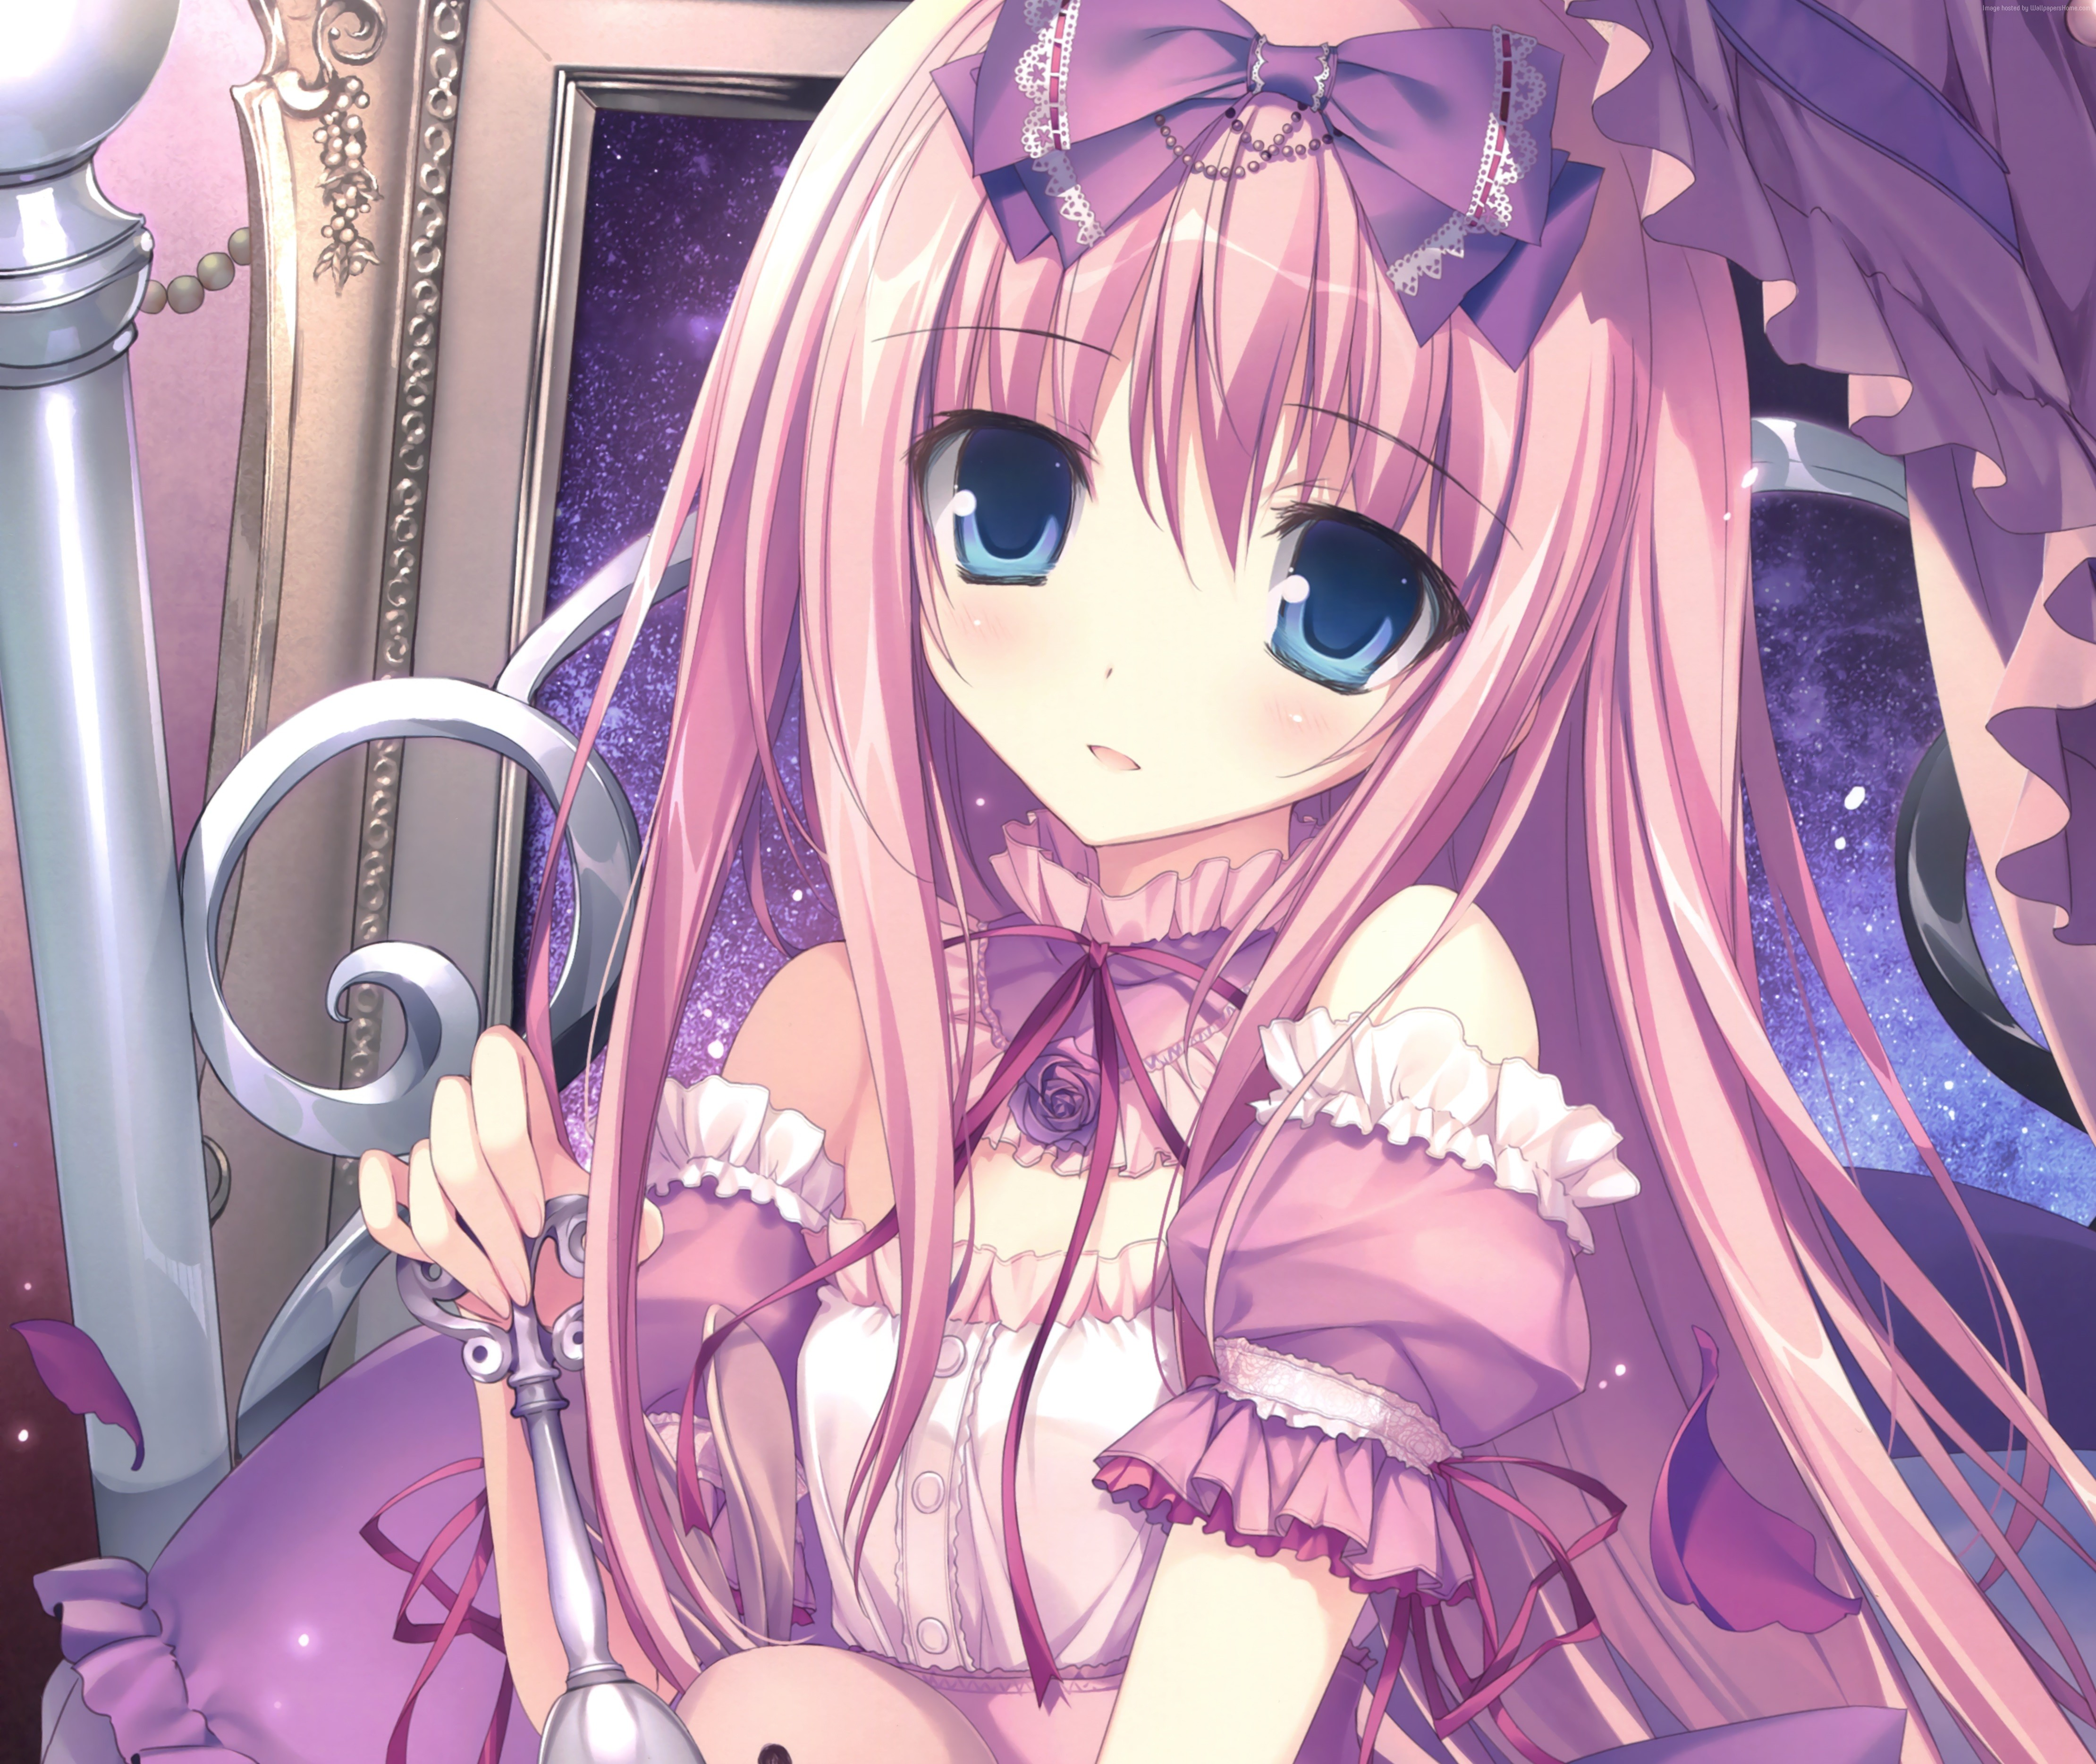 Wallpaper anime girl 5k art 14712 - 5k anime wallpaper ...